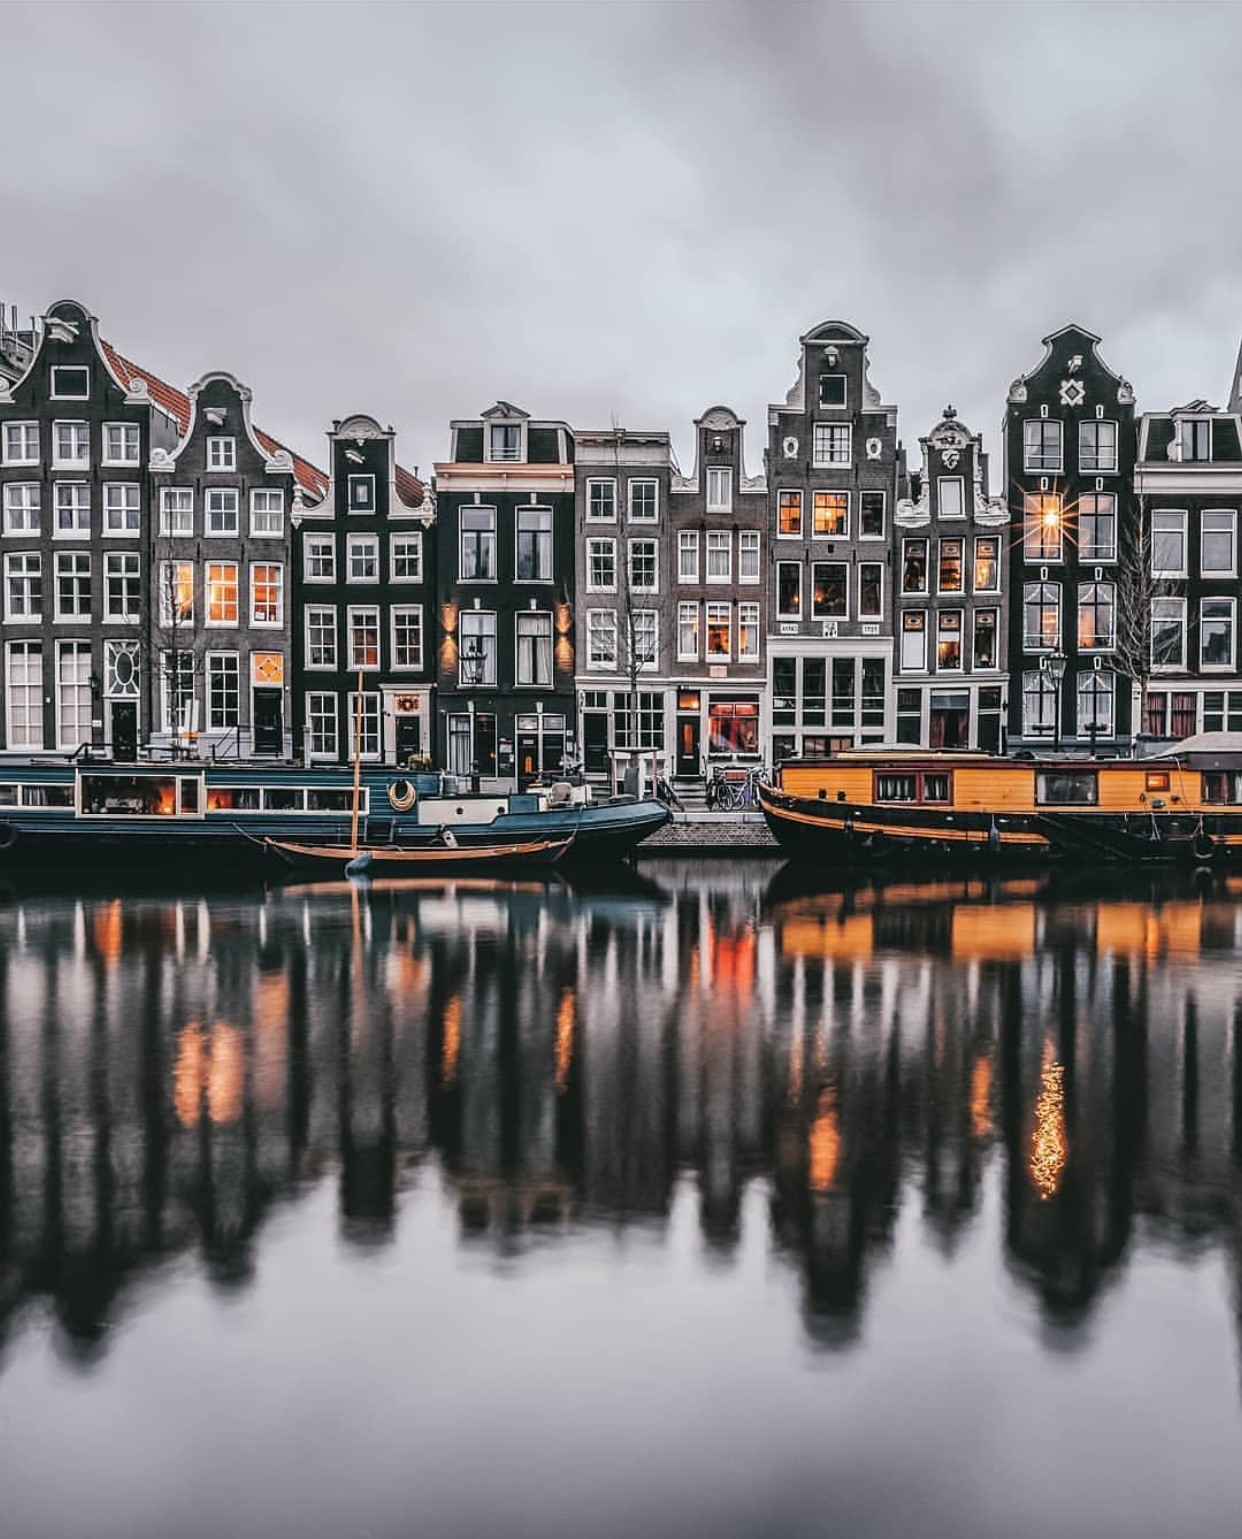 le-dancing-houses-amsterdam-25eb448cad6a